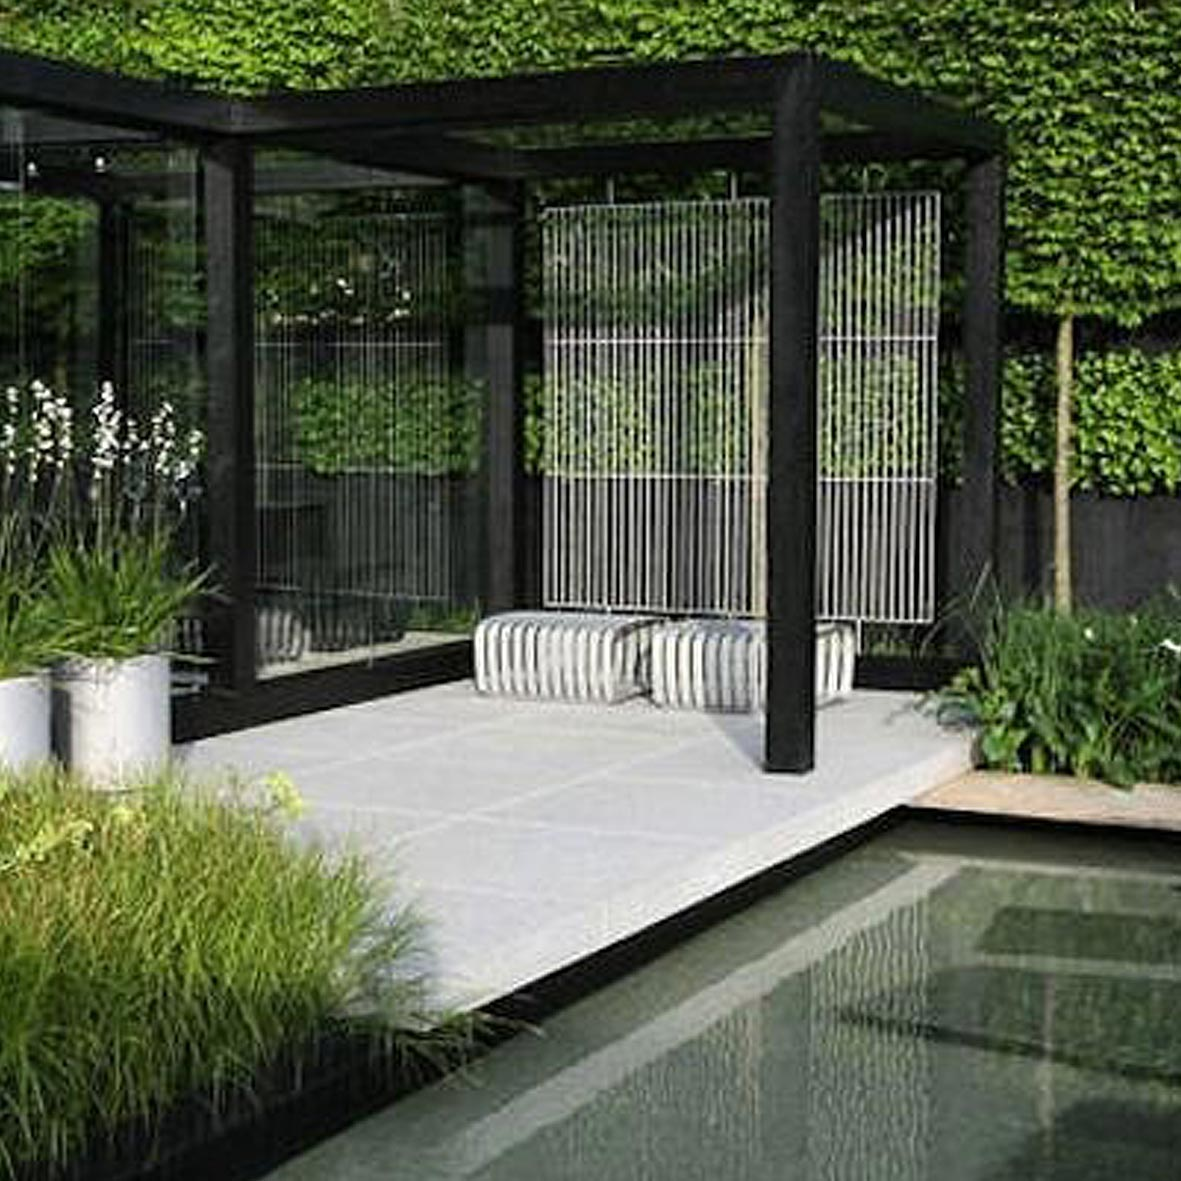 Sisj lifestyle modern garden design she is sarah jane for Modern garden design